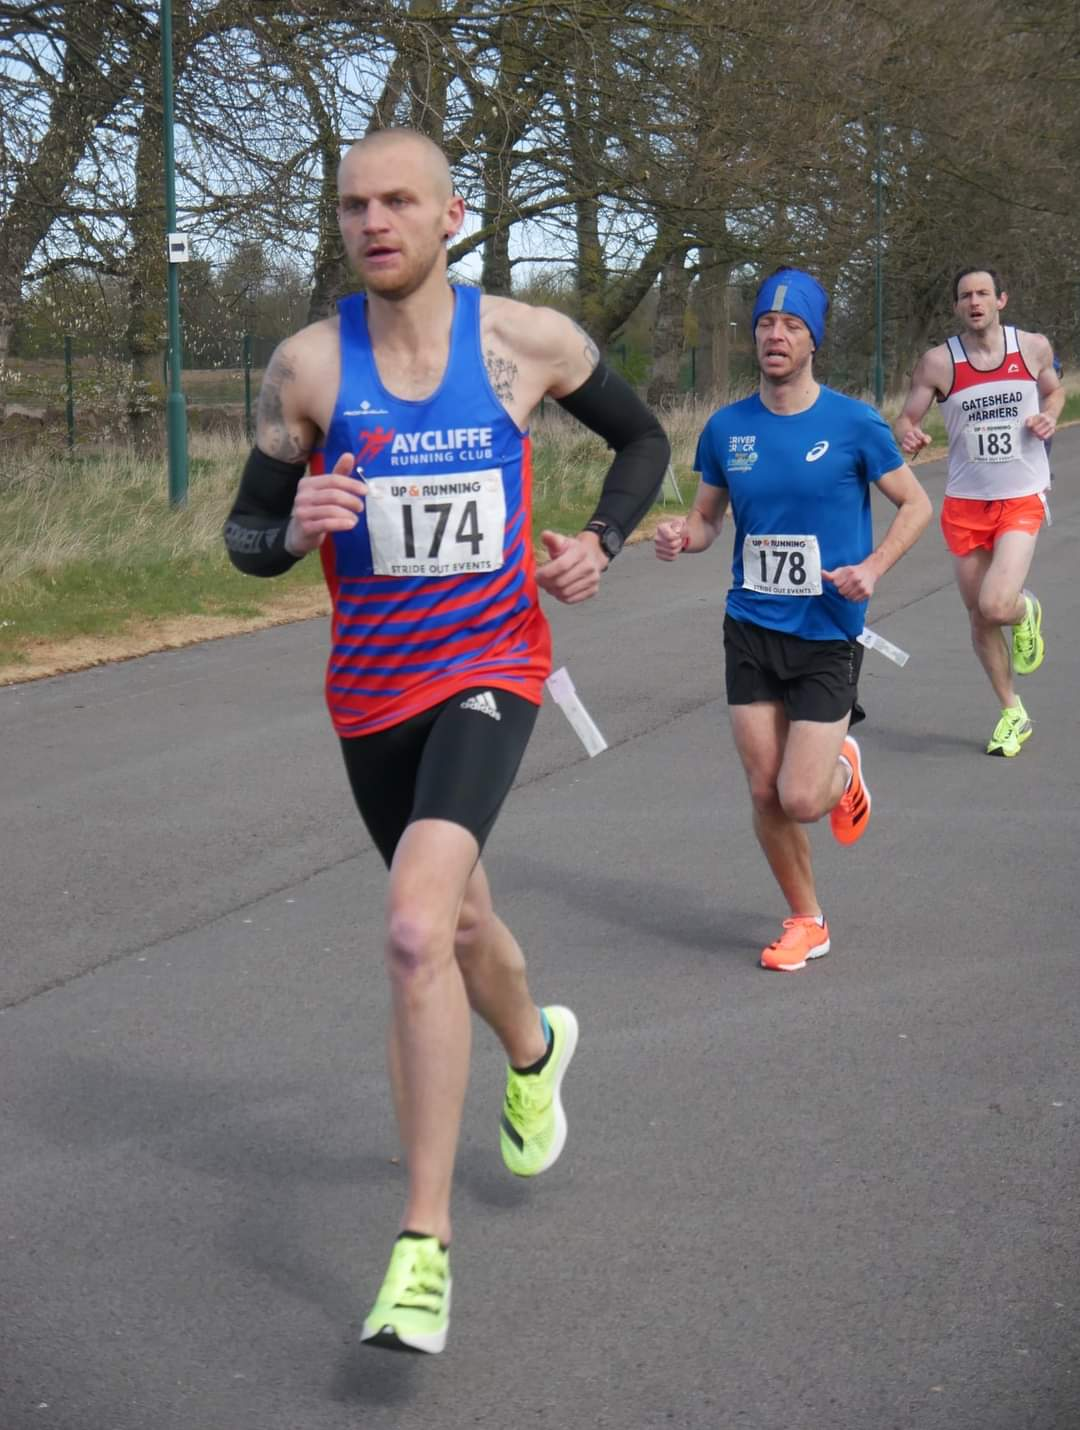 John FIRBY at the Endeavour 5K